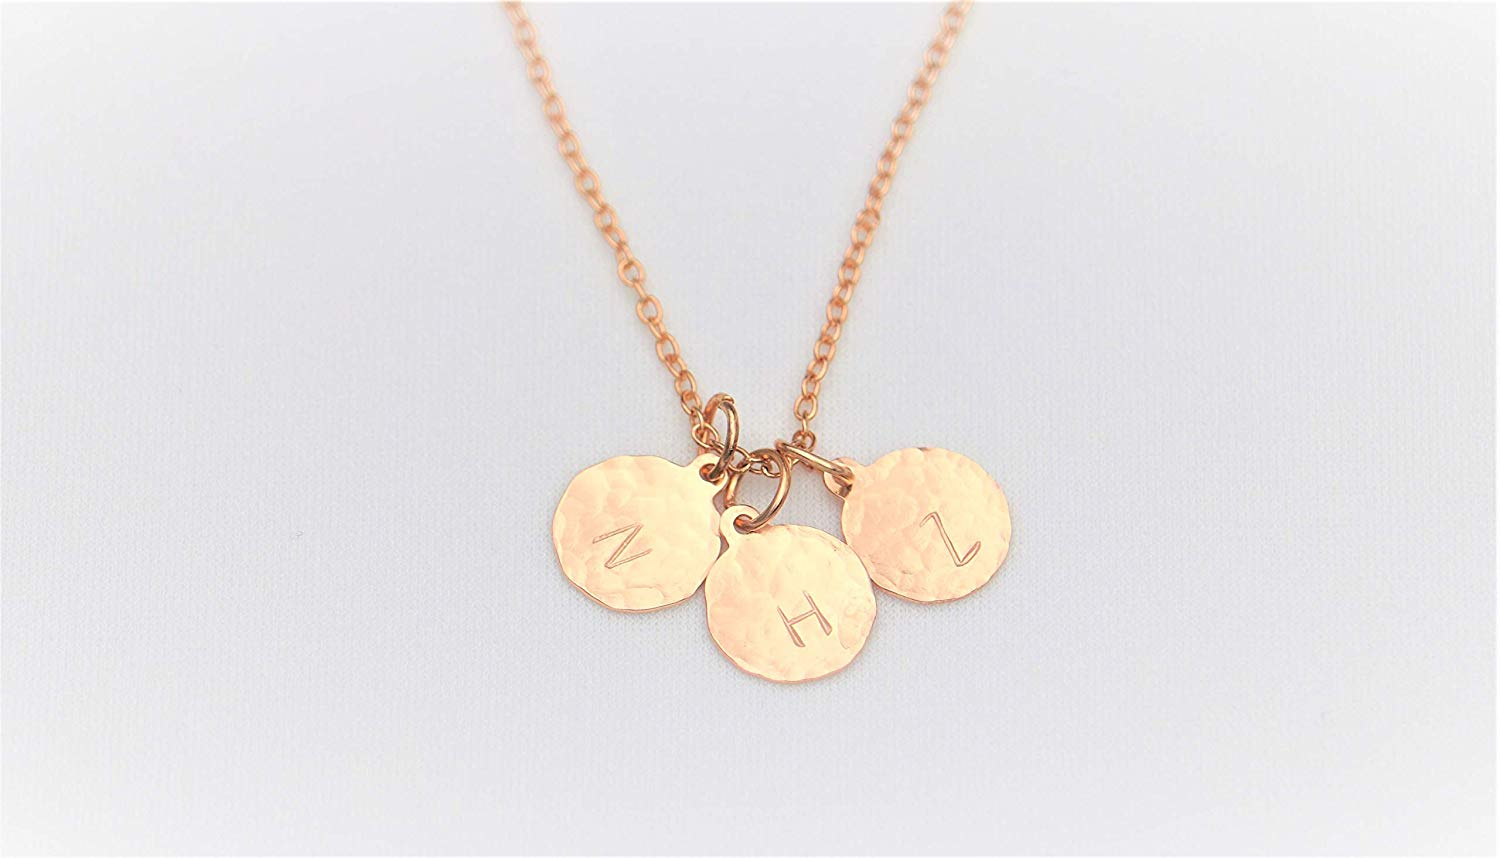 f25e70dd89c Get Quotations · Hammered Disc Initial Necklace Gold Filled Personalized  Hand Stamped Initial Disc Mother's day Necklace Dainty Necklace